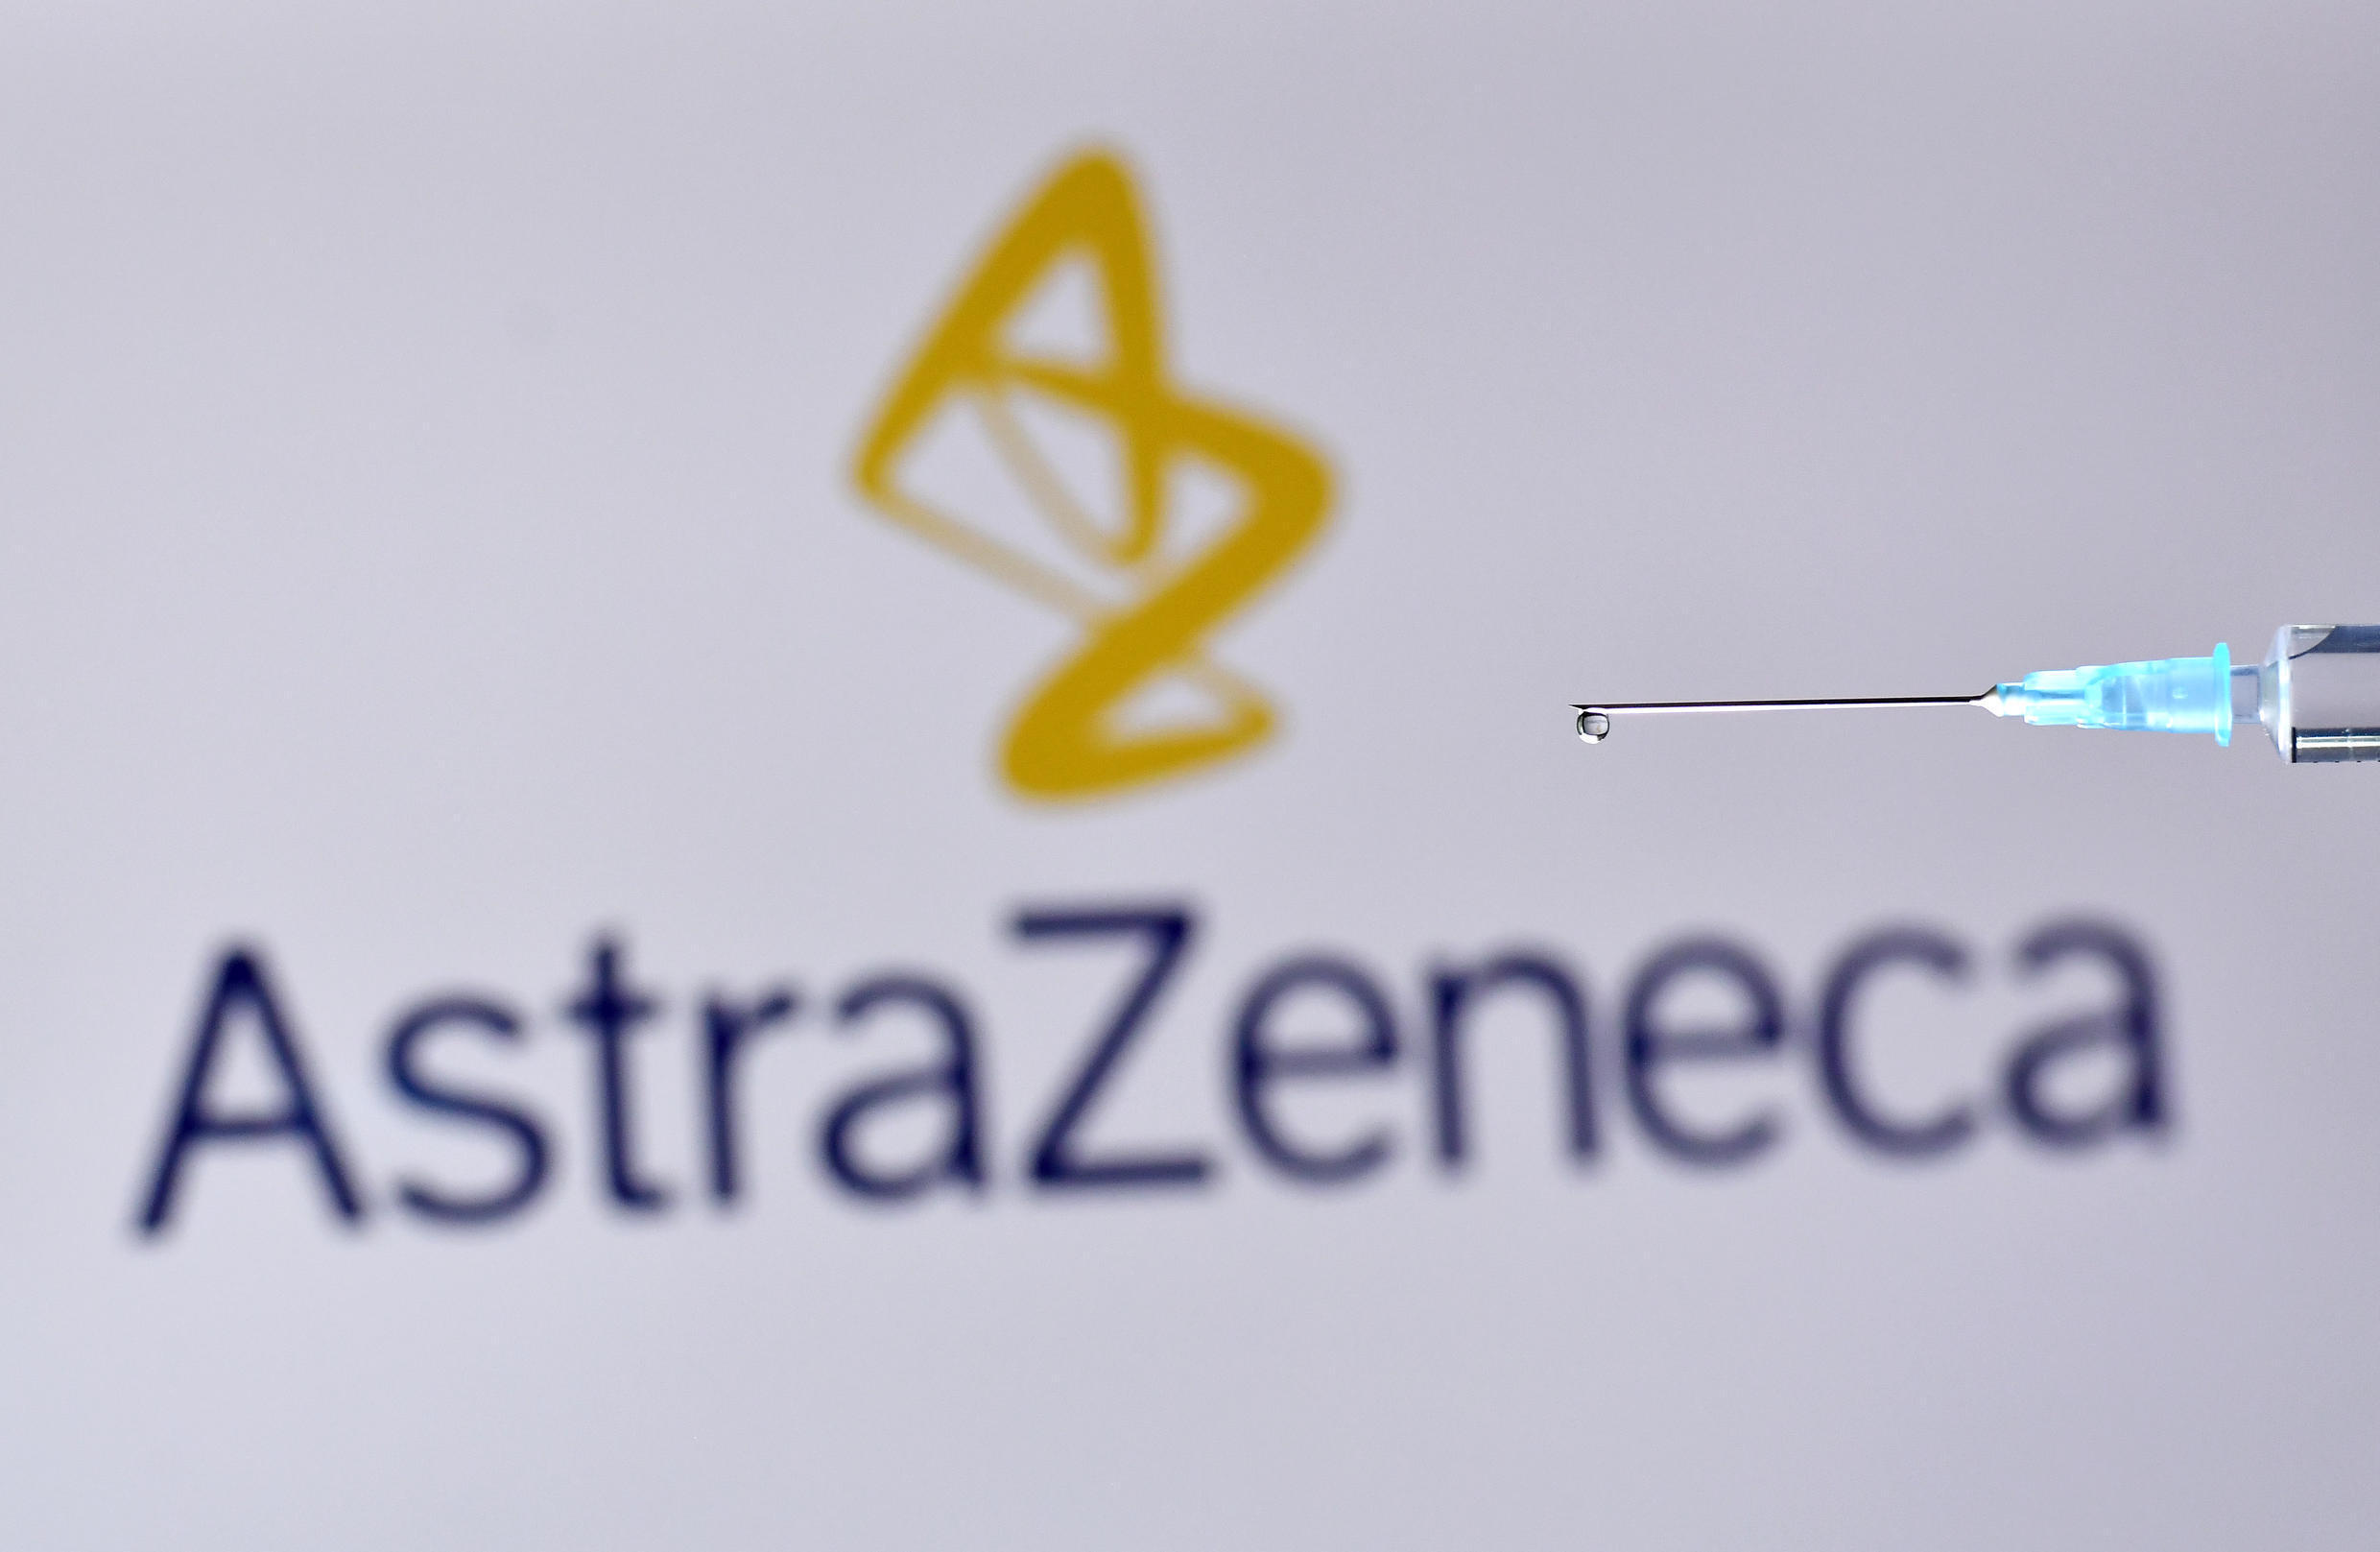 AstraZeneca was contracted to deliver its drug to EU governments beforehand to allow a rapid roll out